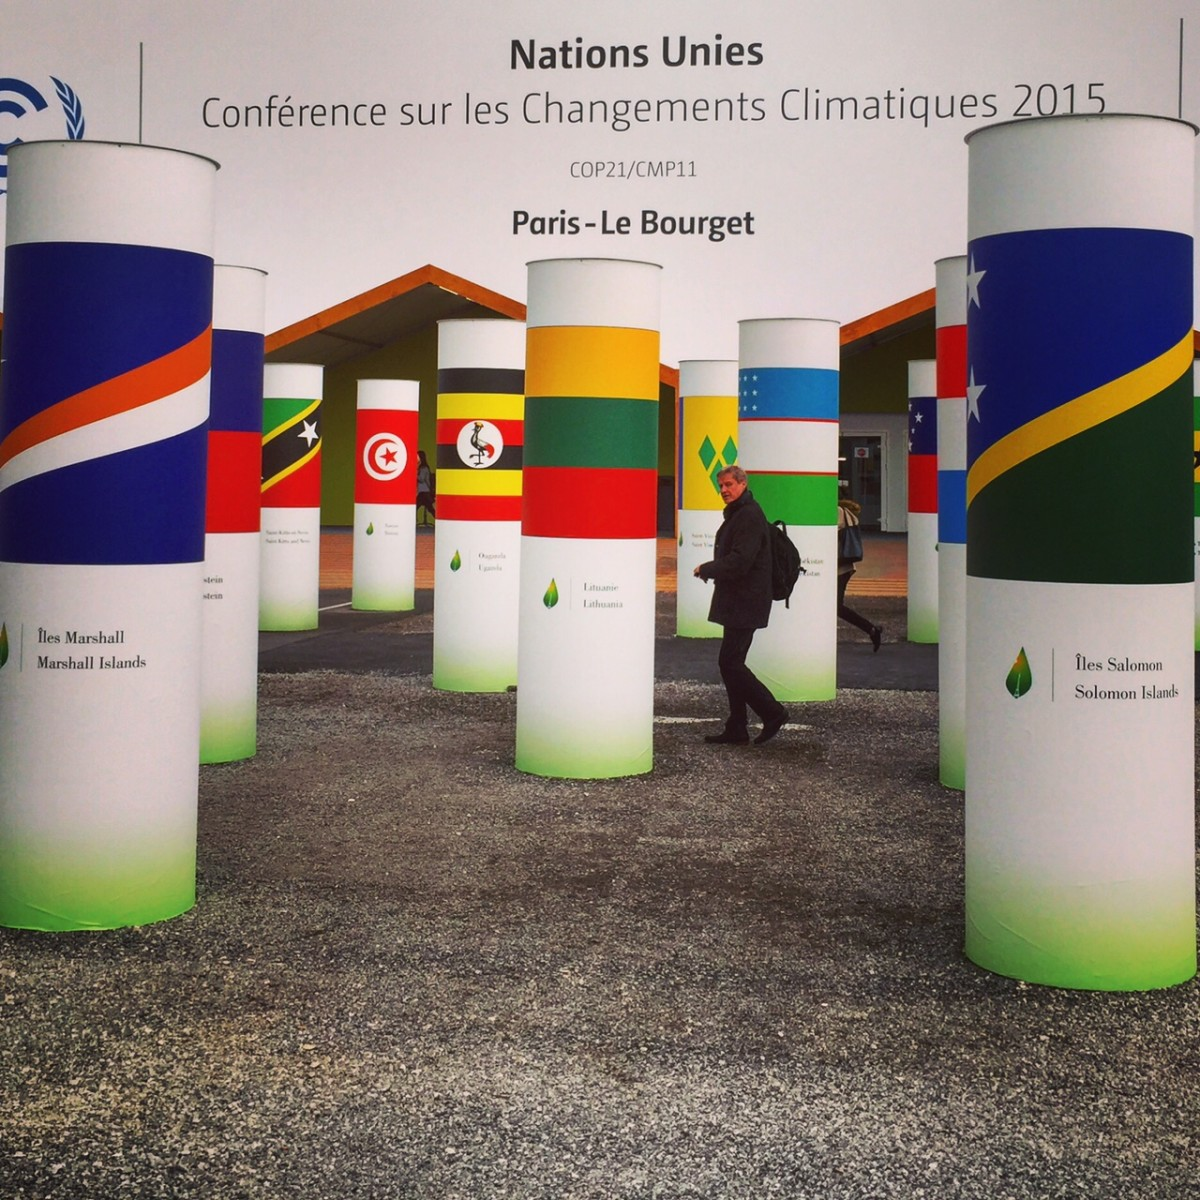 A view of COP21 in Le Bourget, France, in 2015.